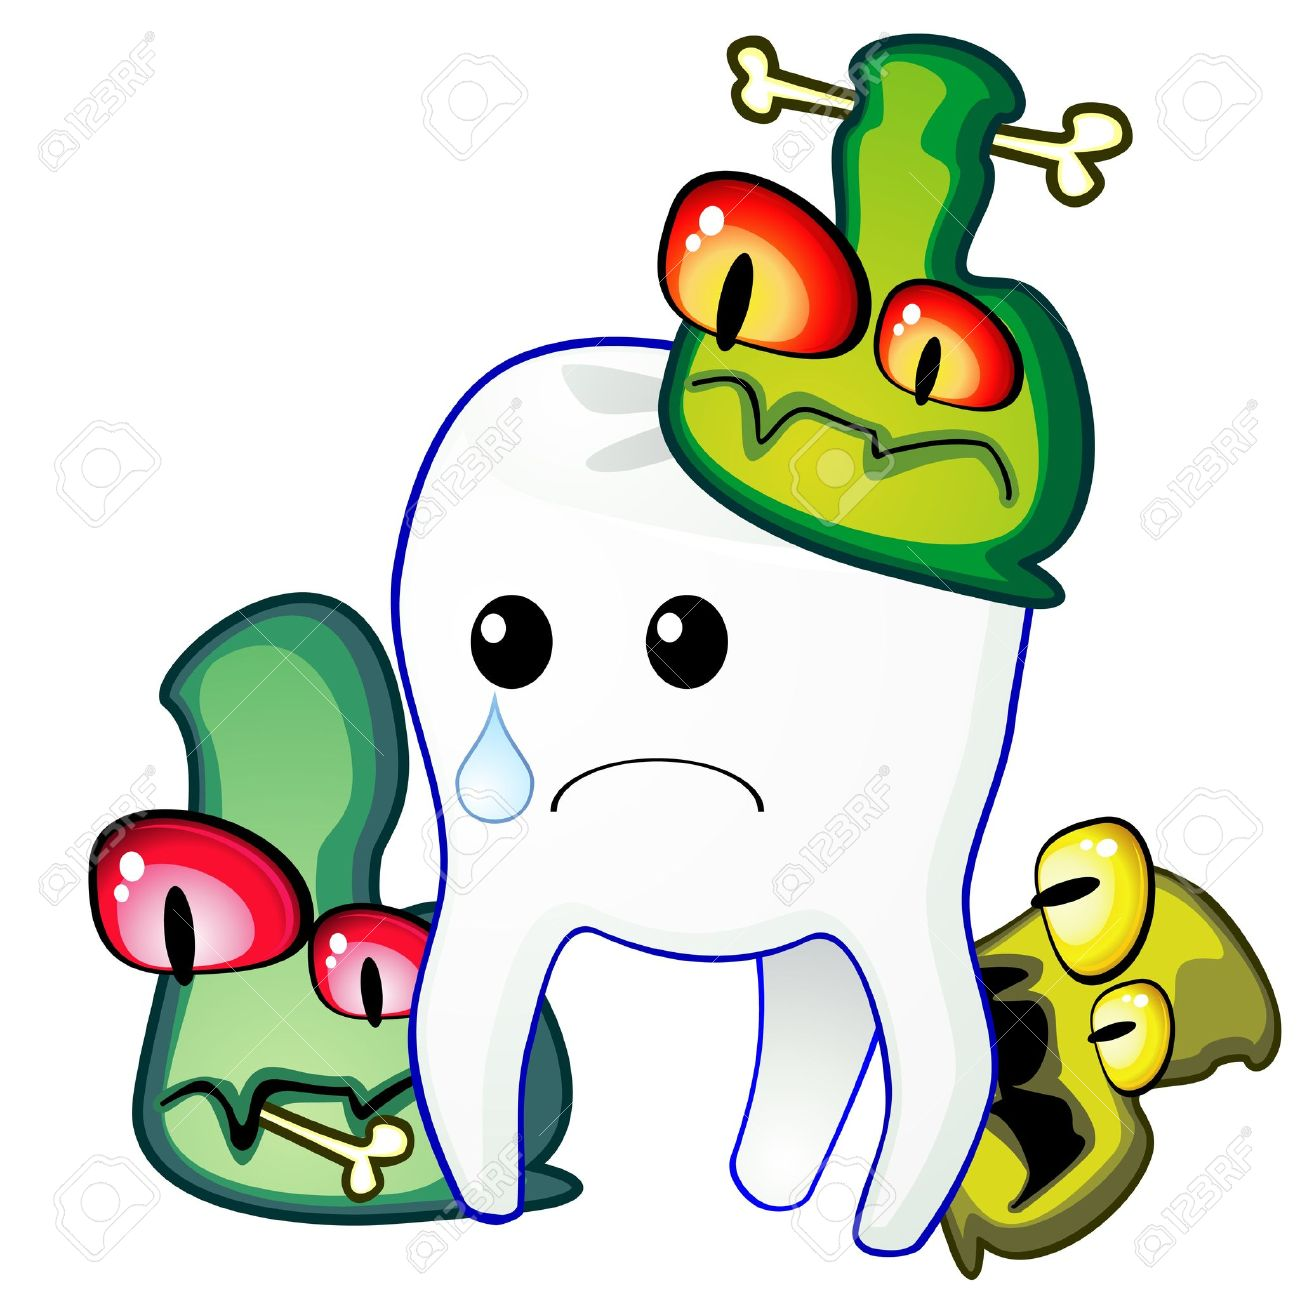 Poor Sad Tooth Is Attacked By Germs Of Caries Royalty Free Cliparts